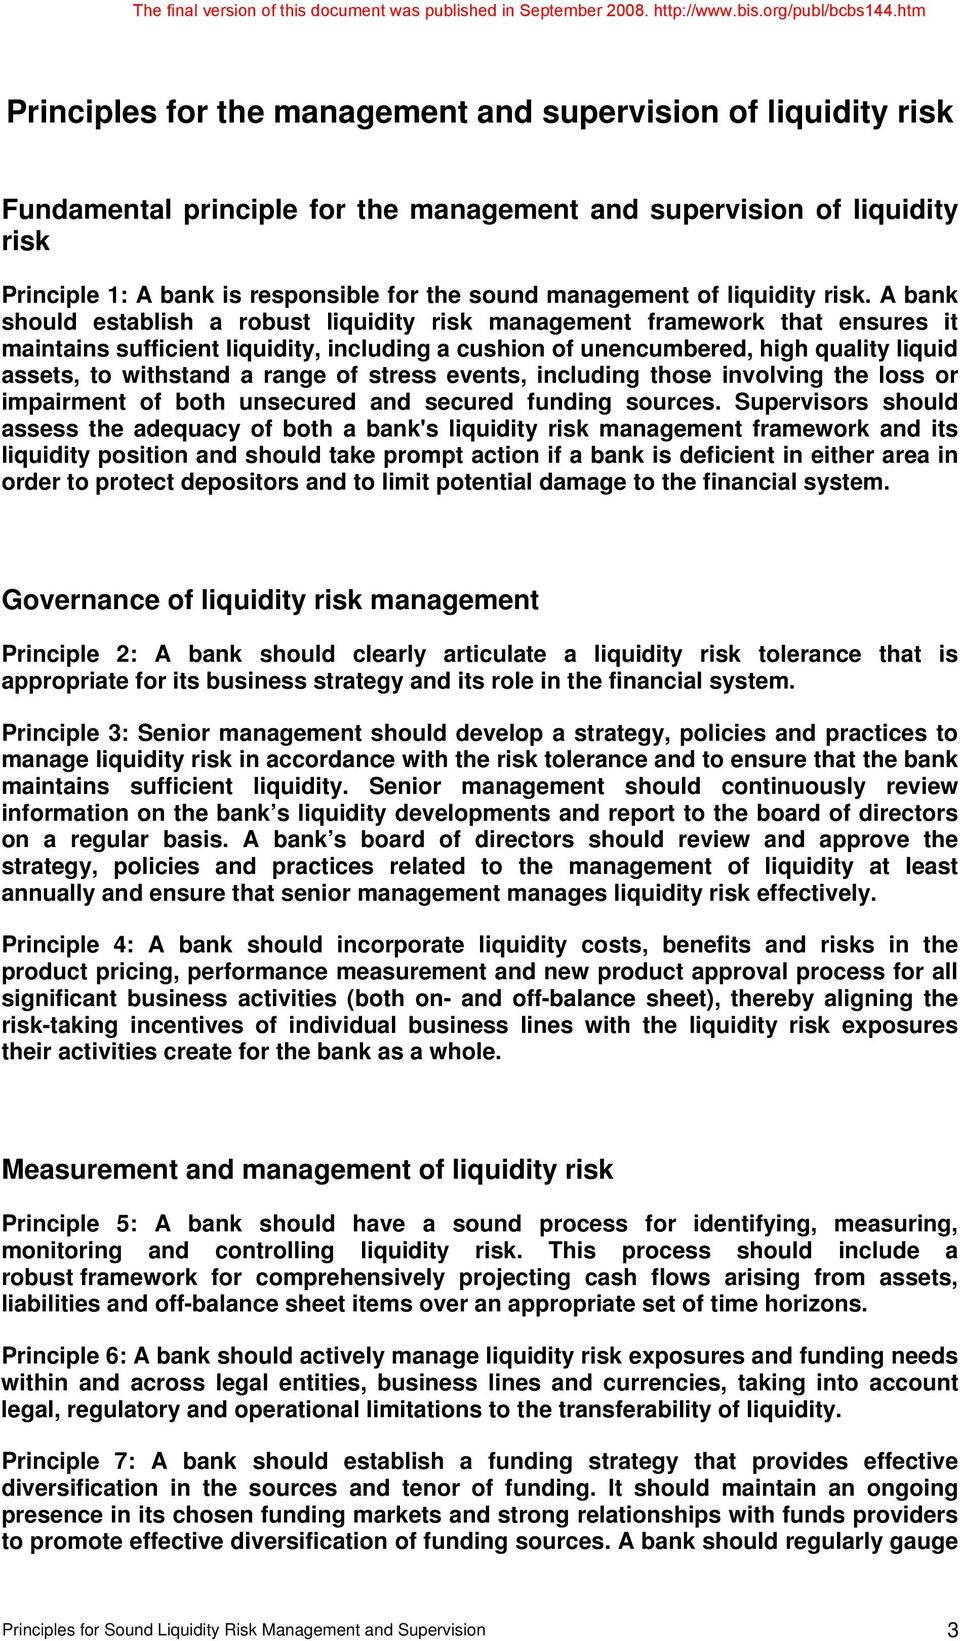 A bank should establish a robust liquidity risk management framework that ensures it maintains sufficient liquidity, including a cushion of unencumbered, high quality liquid assets, to withstand a